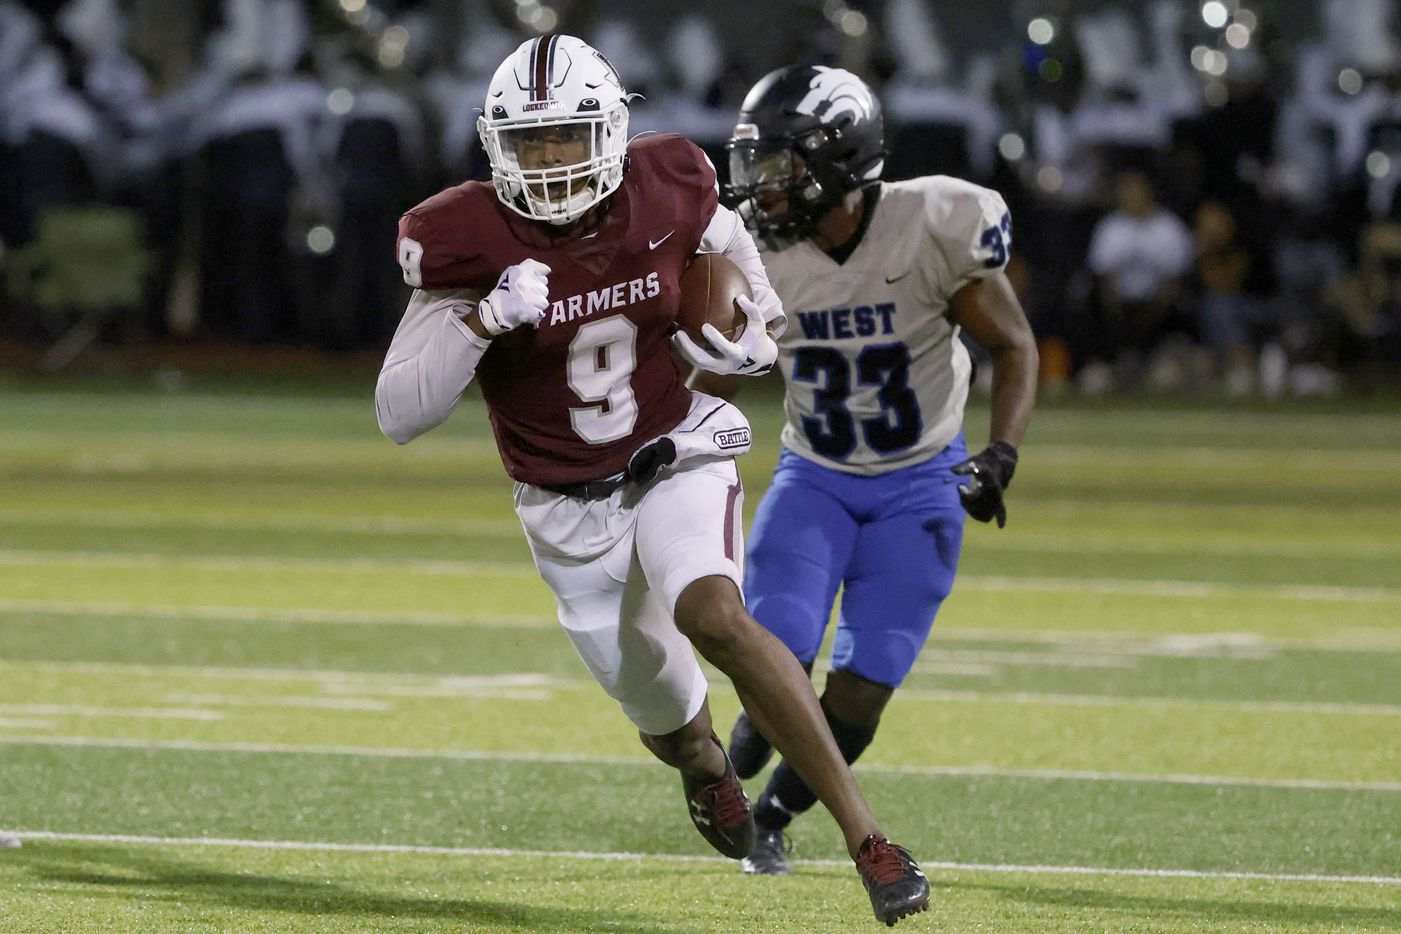 Lewisville receiver Amani Winfeild (9) runs past Plano West defender Johnnie Ingram (33O as he runs for a touchdown during the first half of a high school football game in Lewisville, Texas on Friday, Sept. 24, 2021. (Michael Ainsworth/Special Contributor)